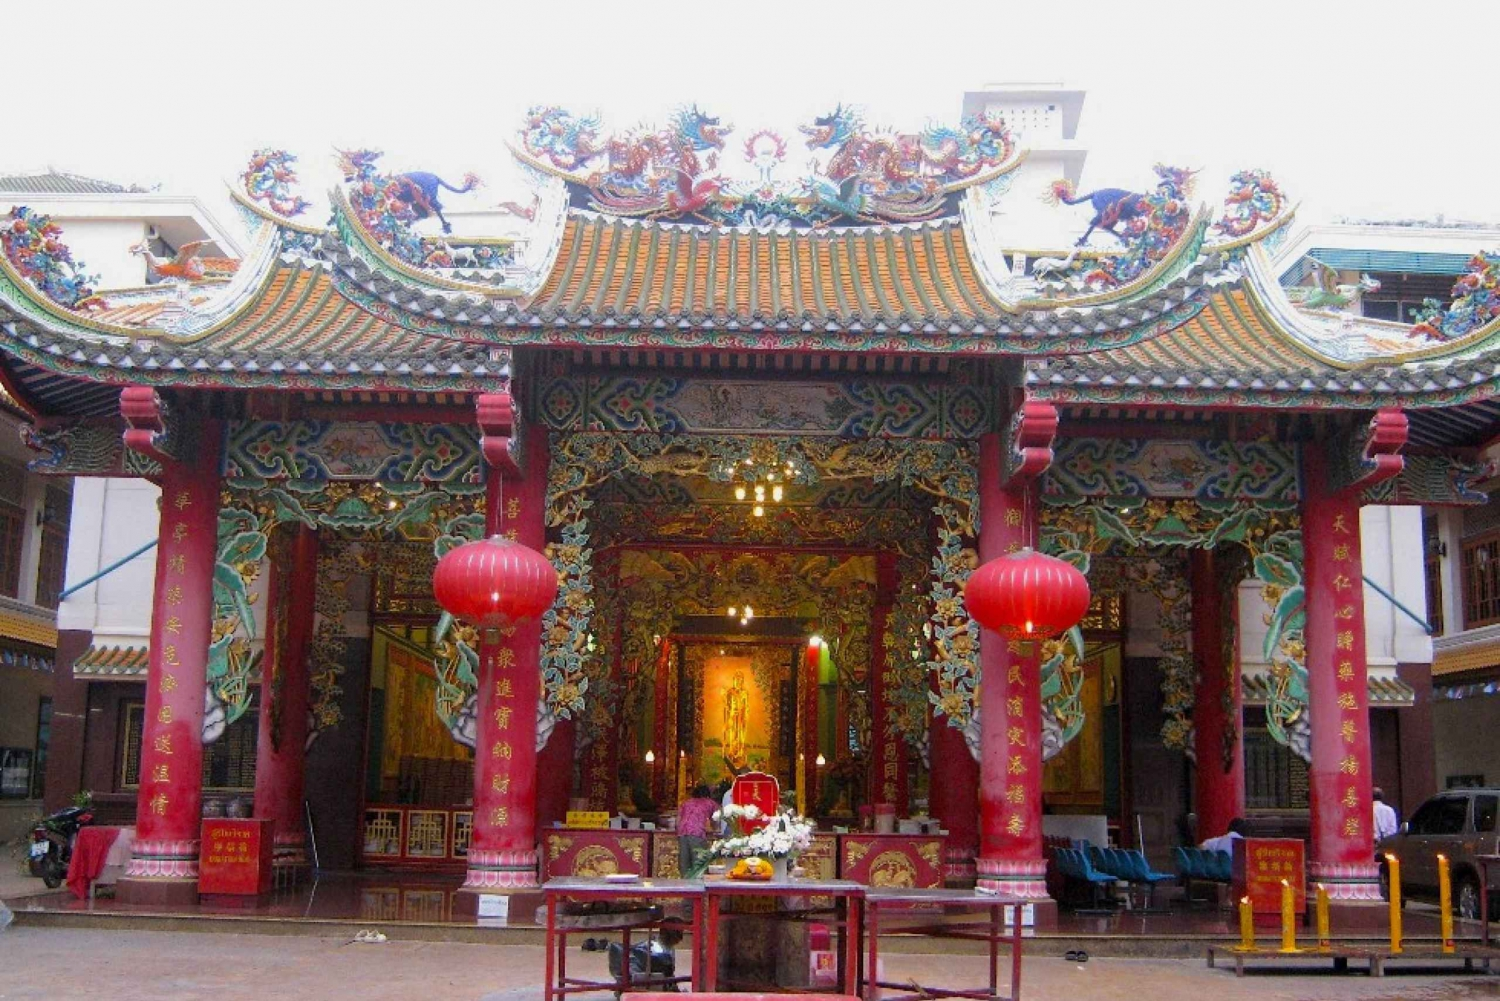 Chinatown Highlights: Sights & Food Small-Group Guided Tour